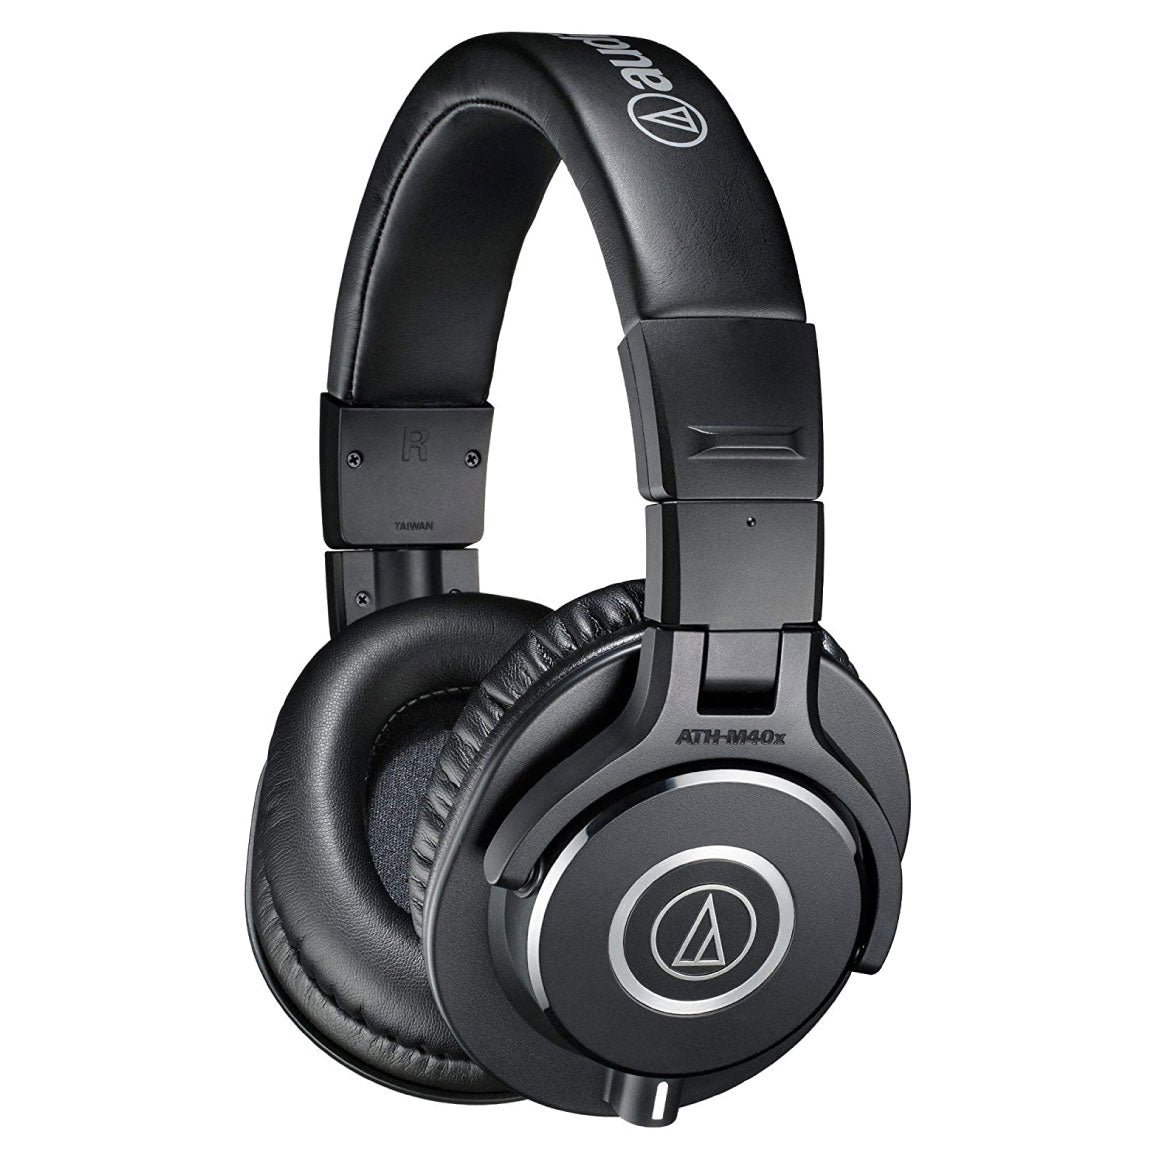 Audio-Technica - ATH-M40x vs competitors